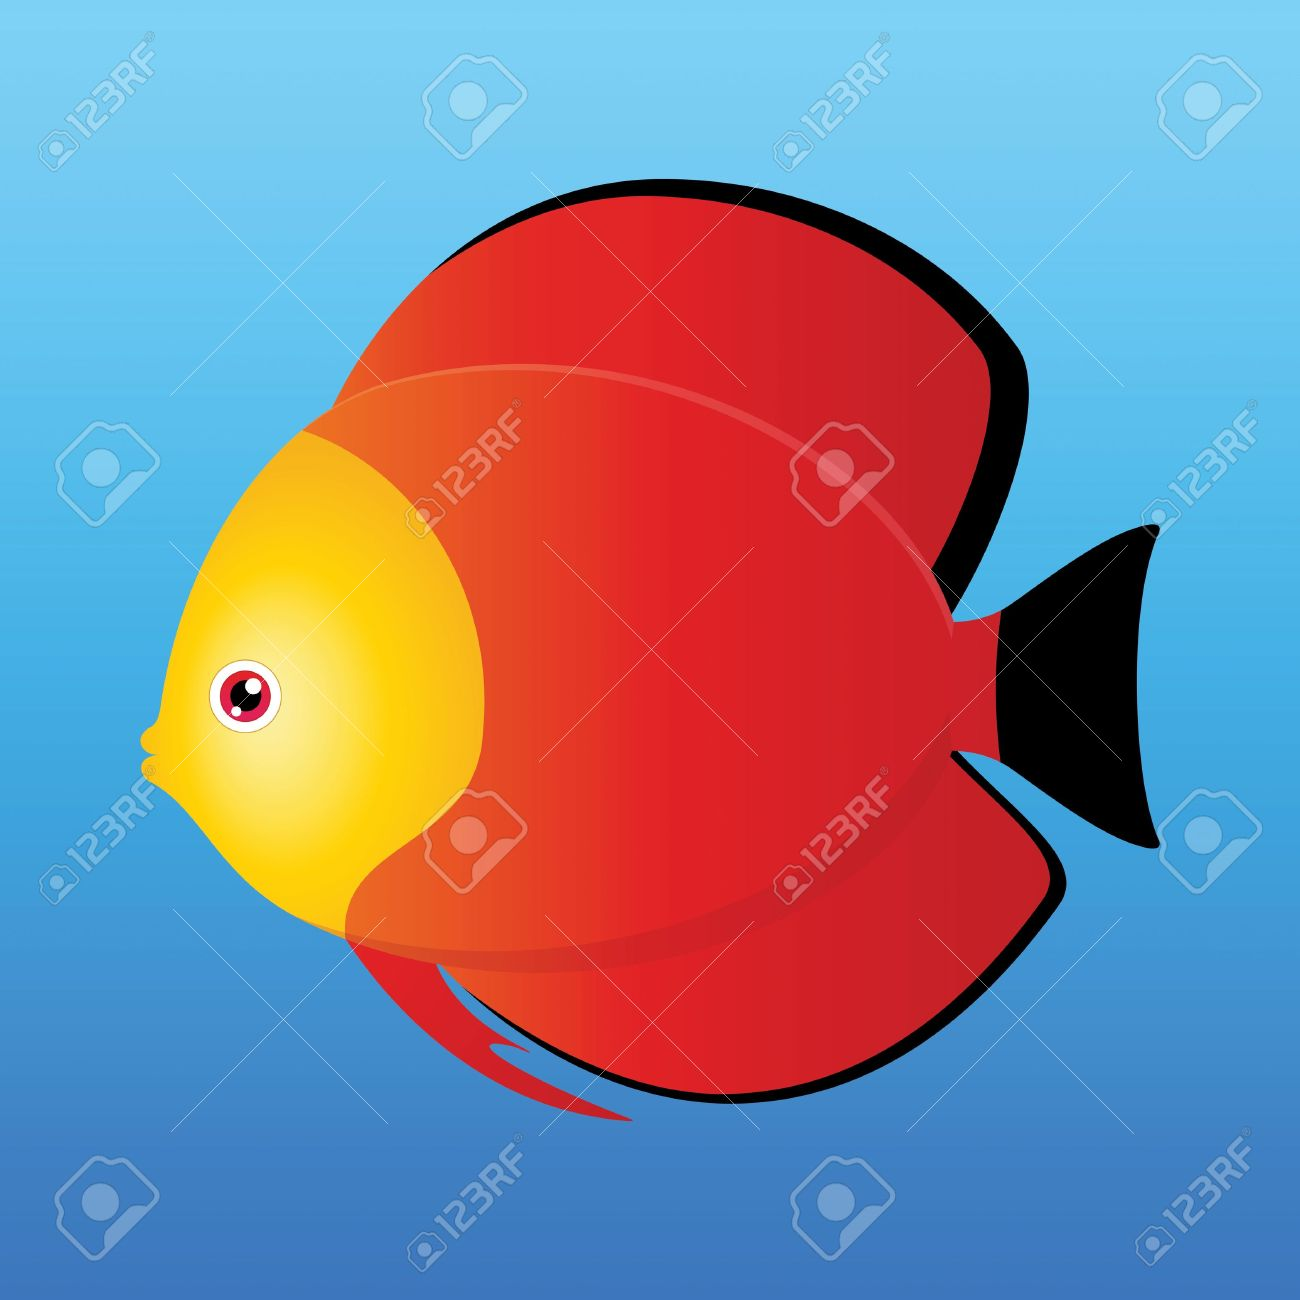 Discus Fish clipart #2, Download drawings